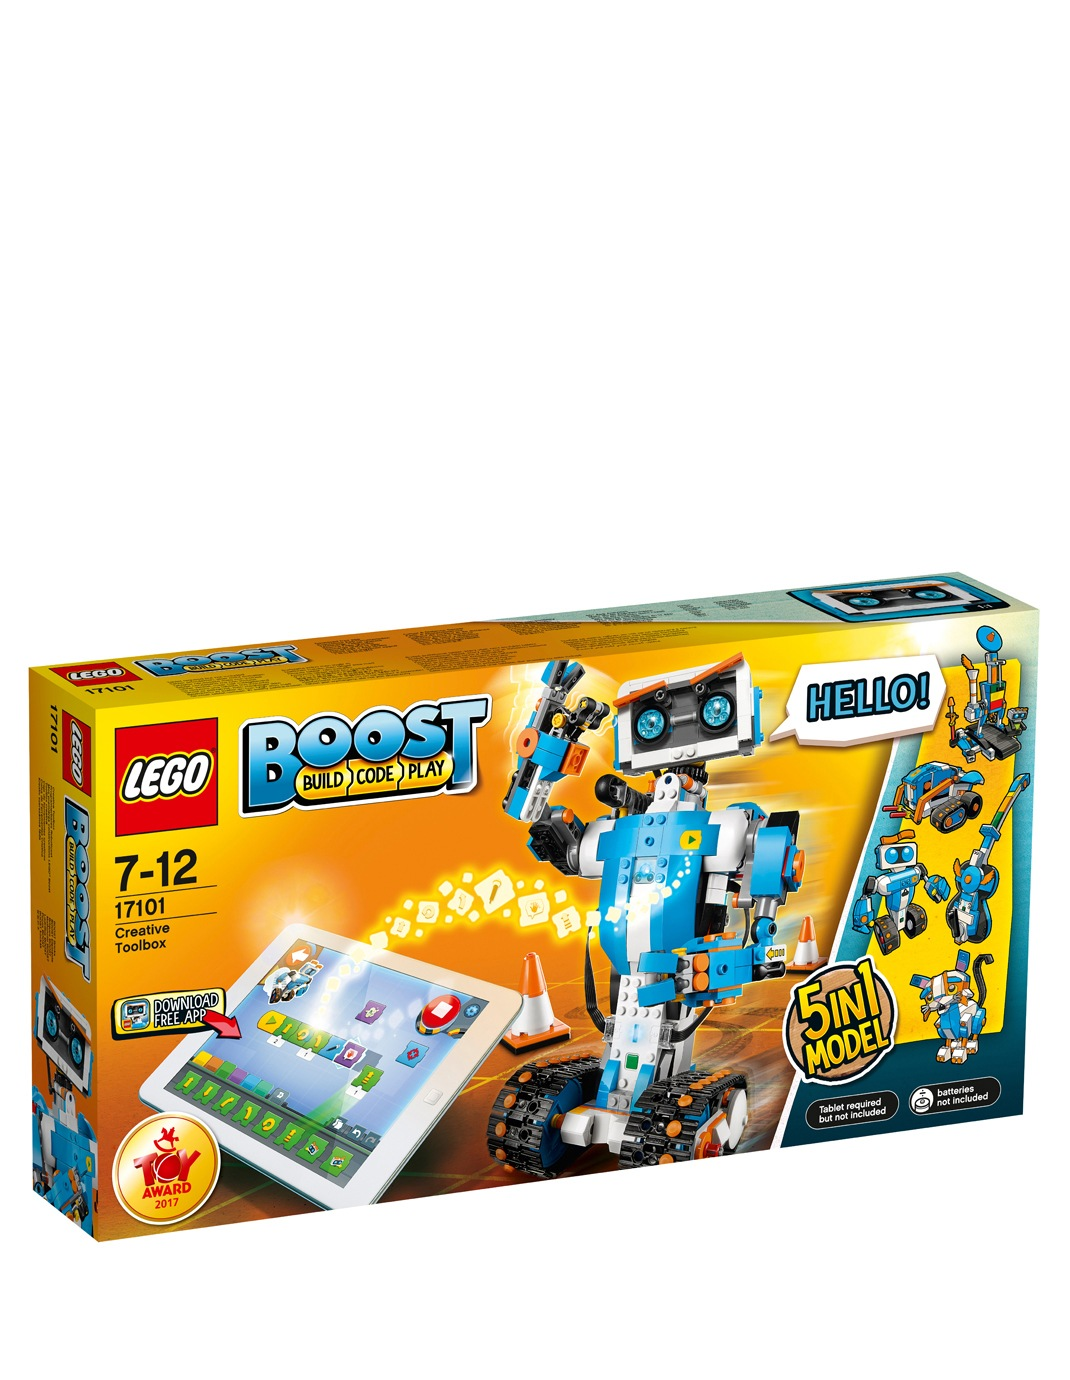 LEGO | Boost Creative Toolbox 17101 | Myer Online